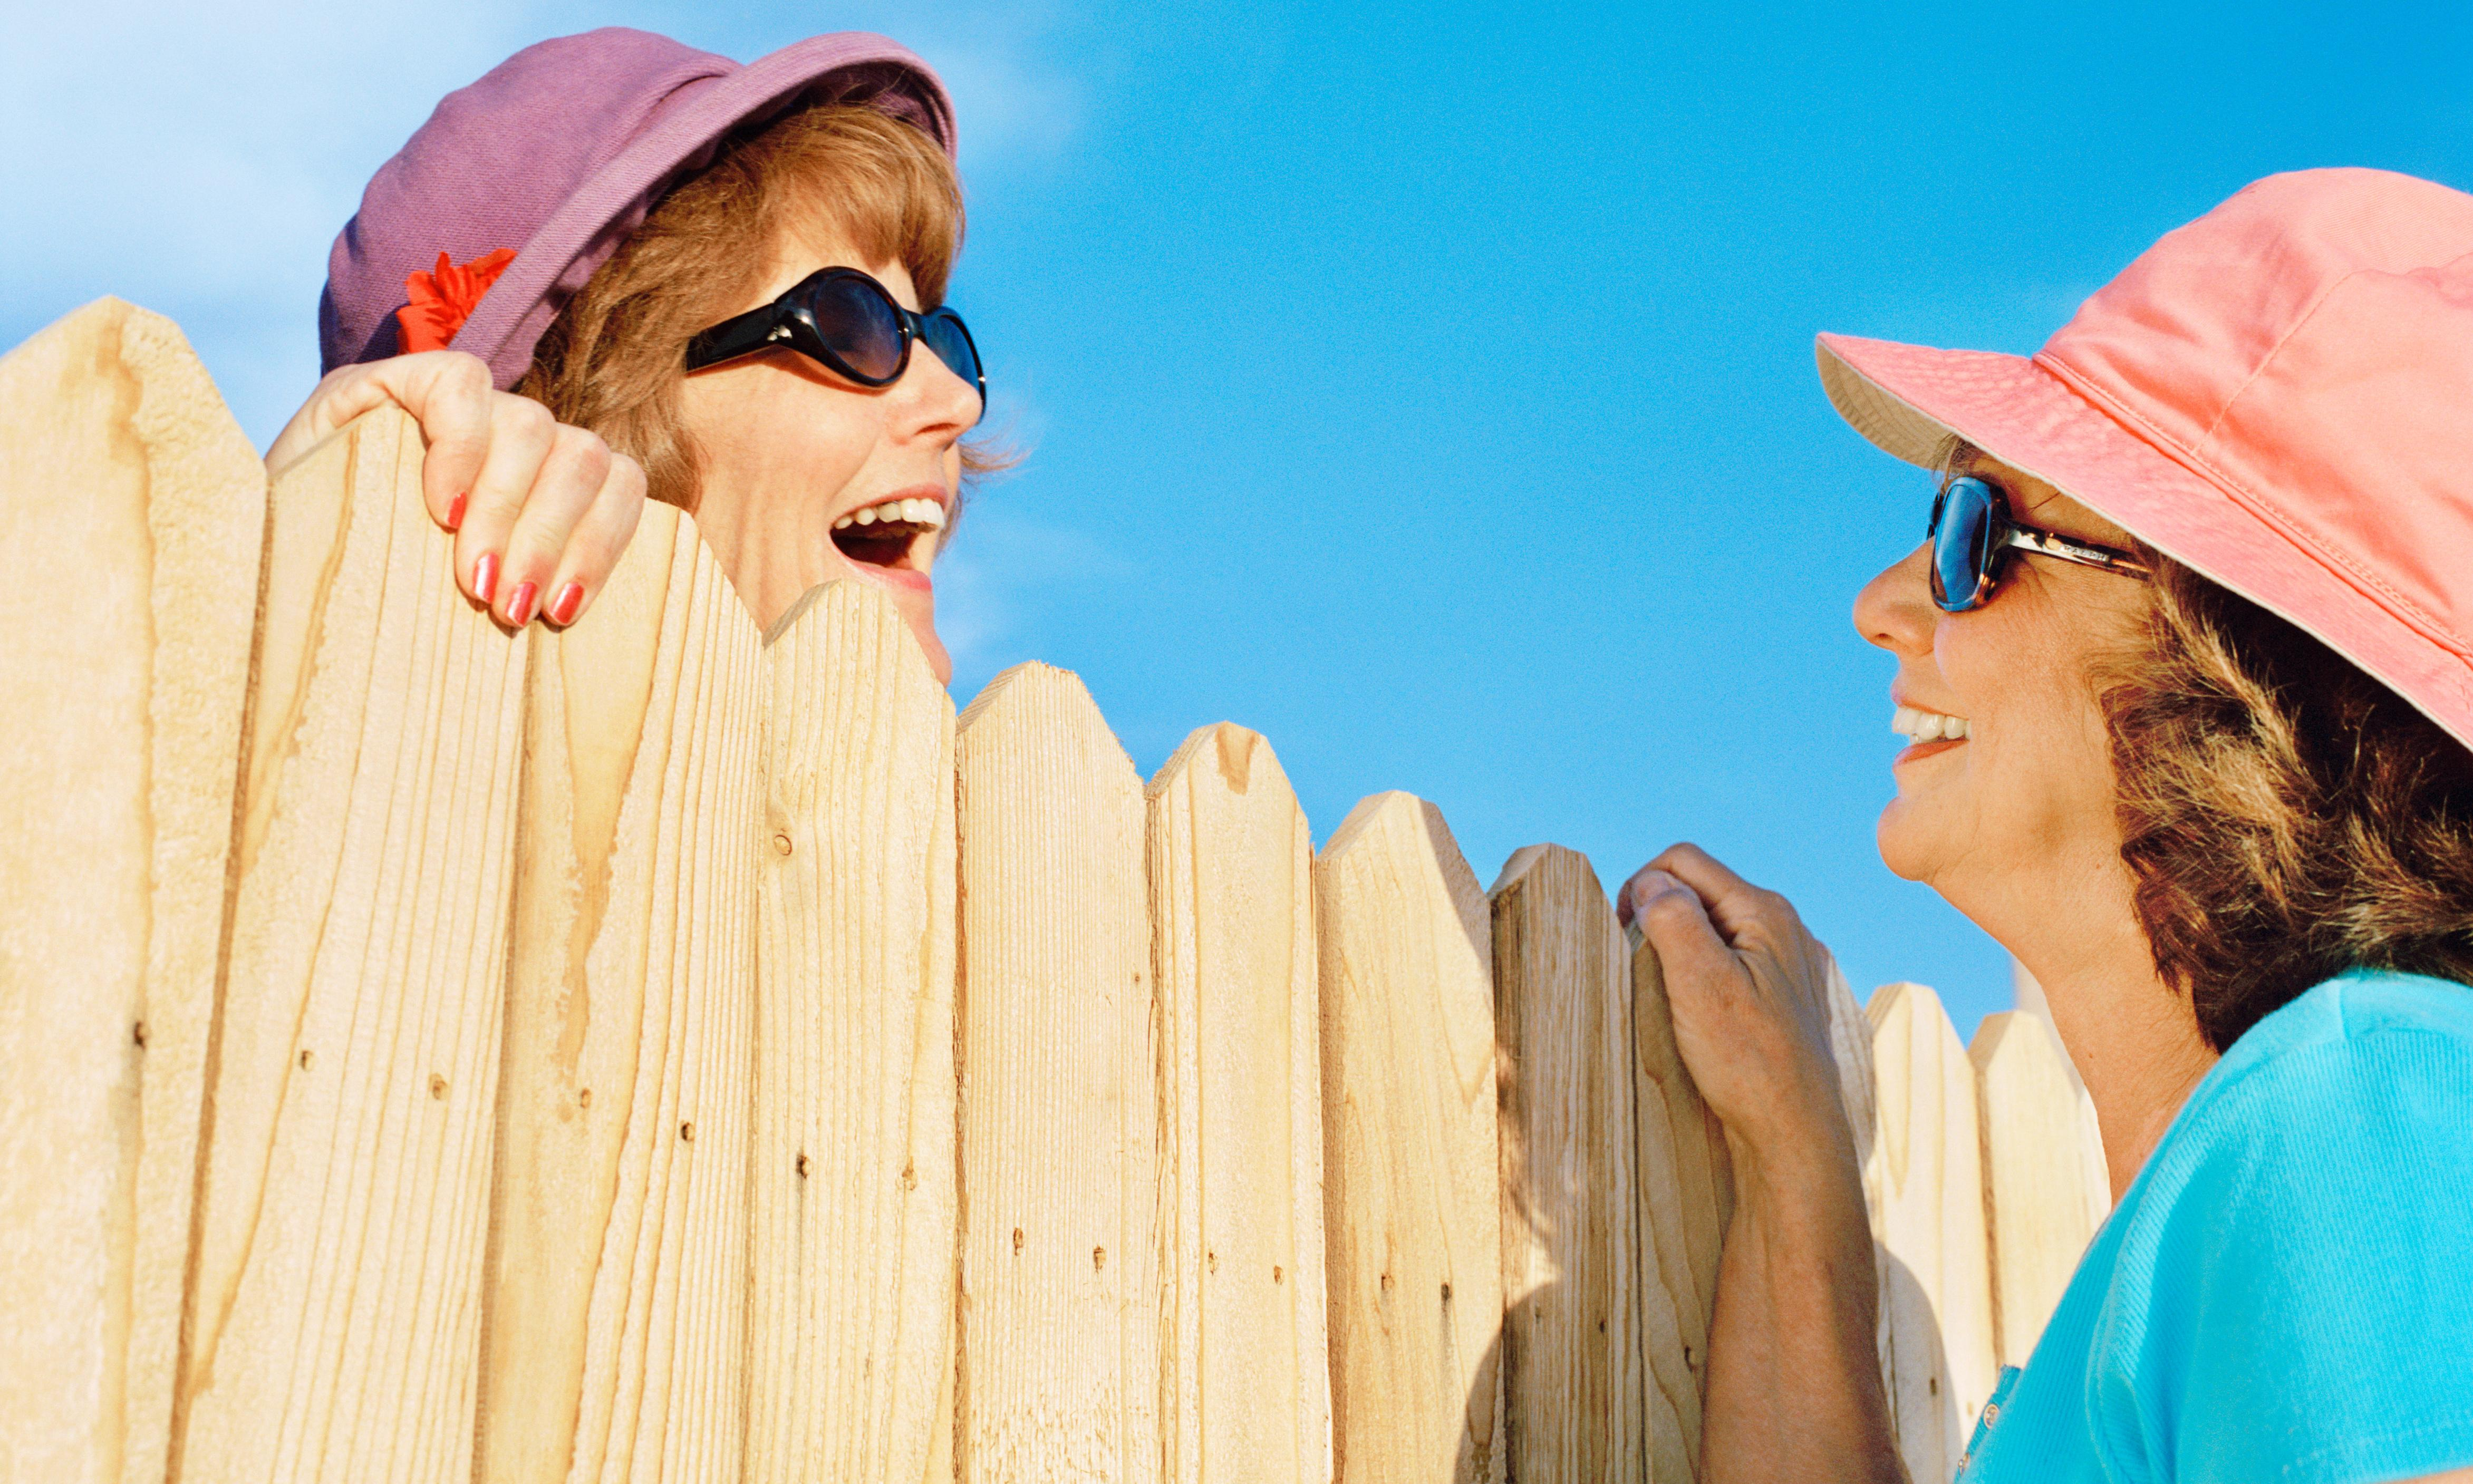 People often sneer at it, but small talk is hugely significant